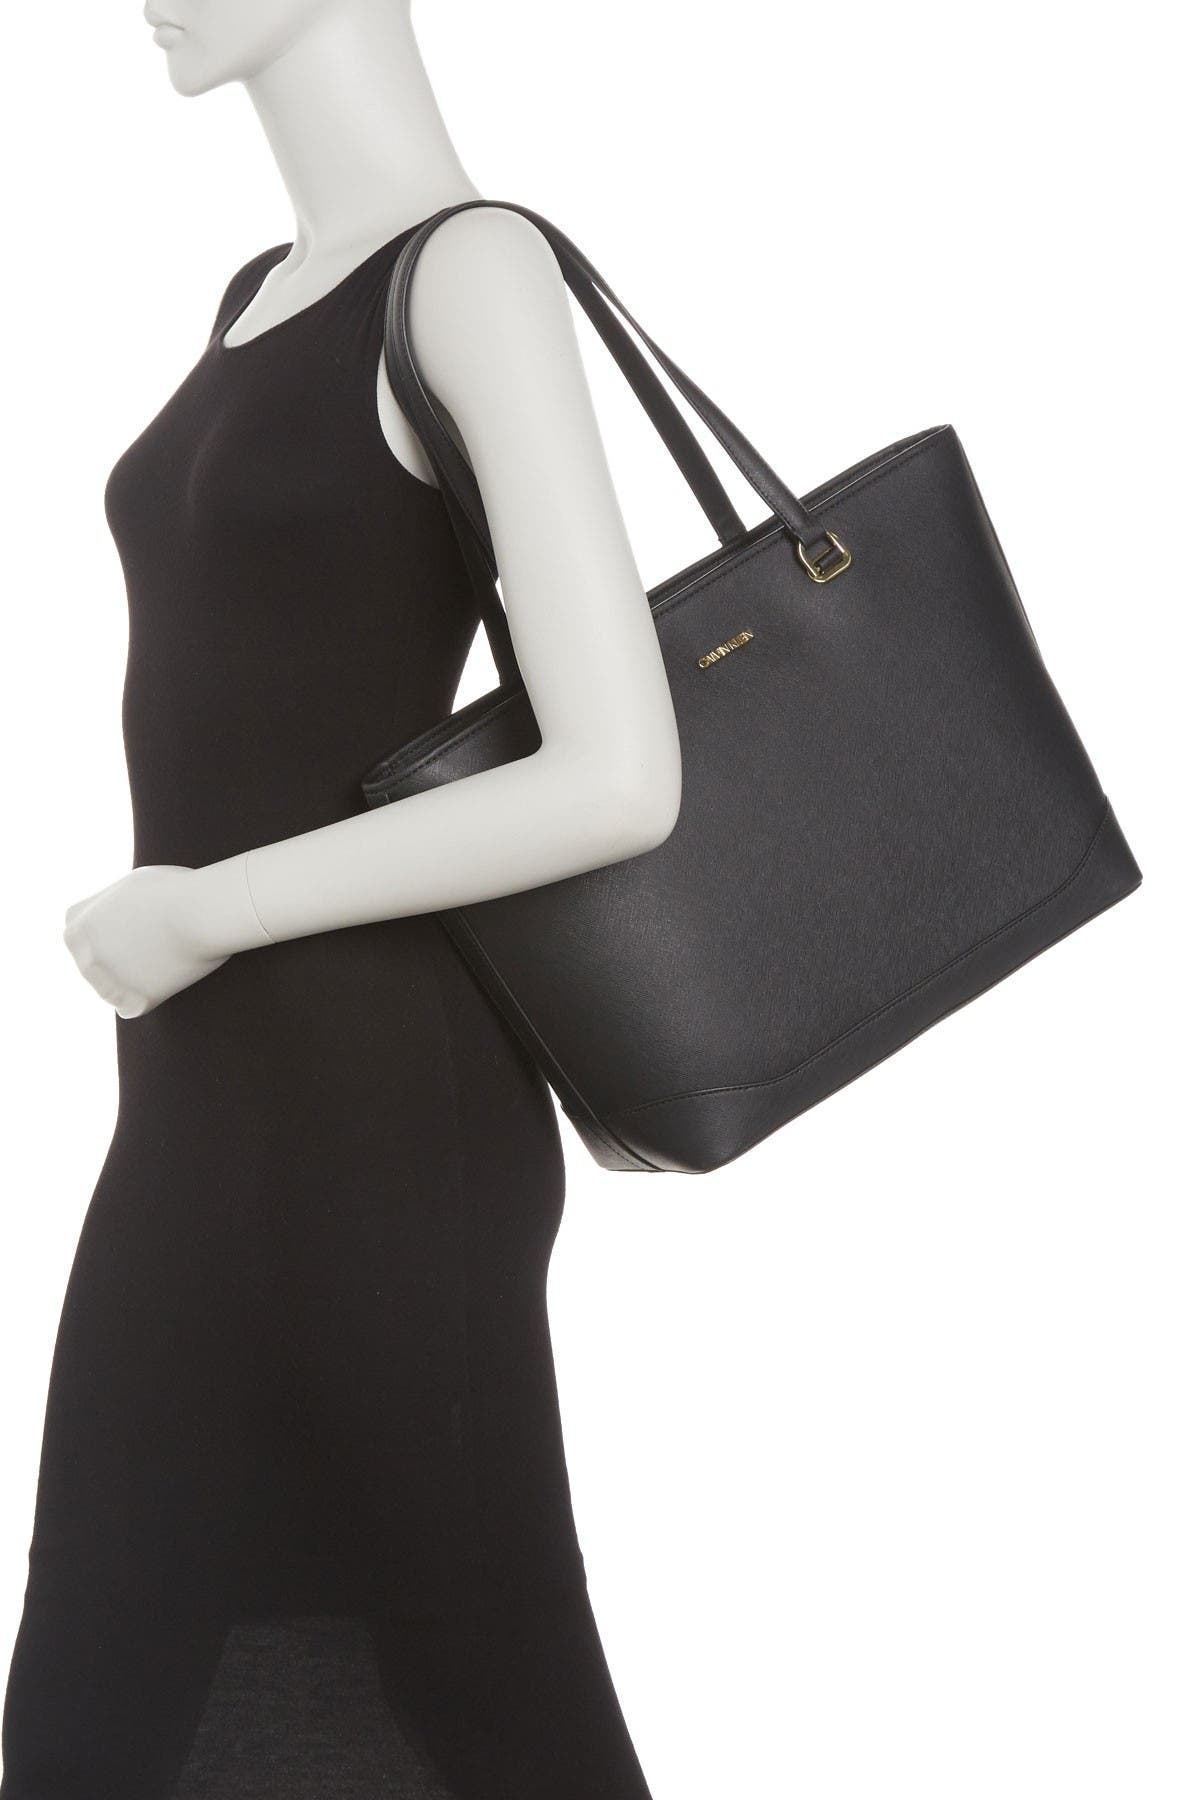 Image of Calvin Klein Mercy Saffiano Largo Top Zip Tote